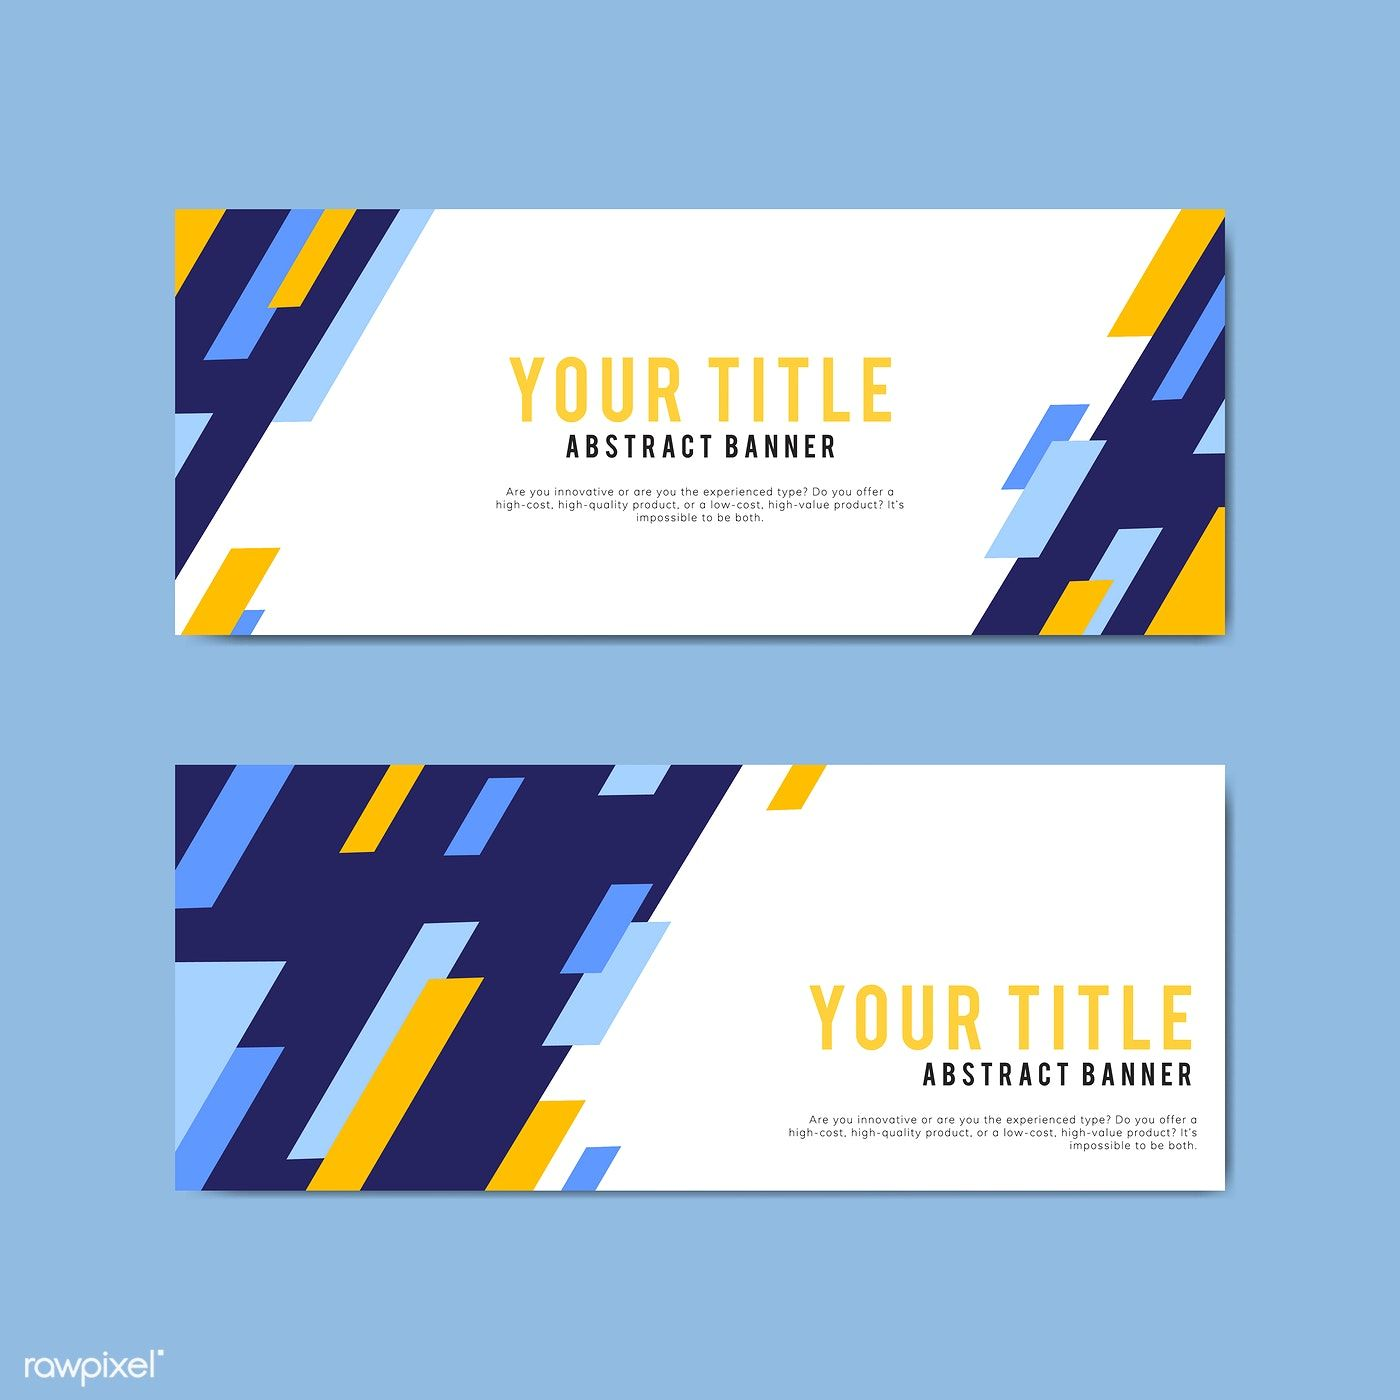 Colorful And Abstract Banner Design Templates Free Image By Rawpixel Com Banner Design Banner Template Design Web Banner Design